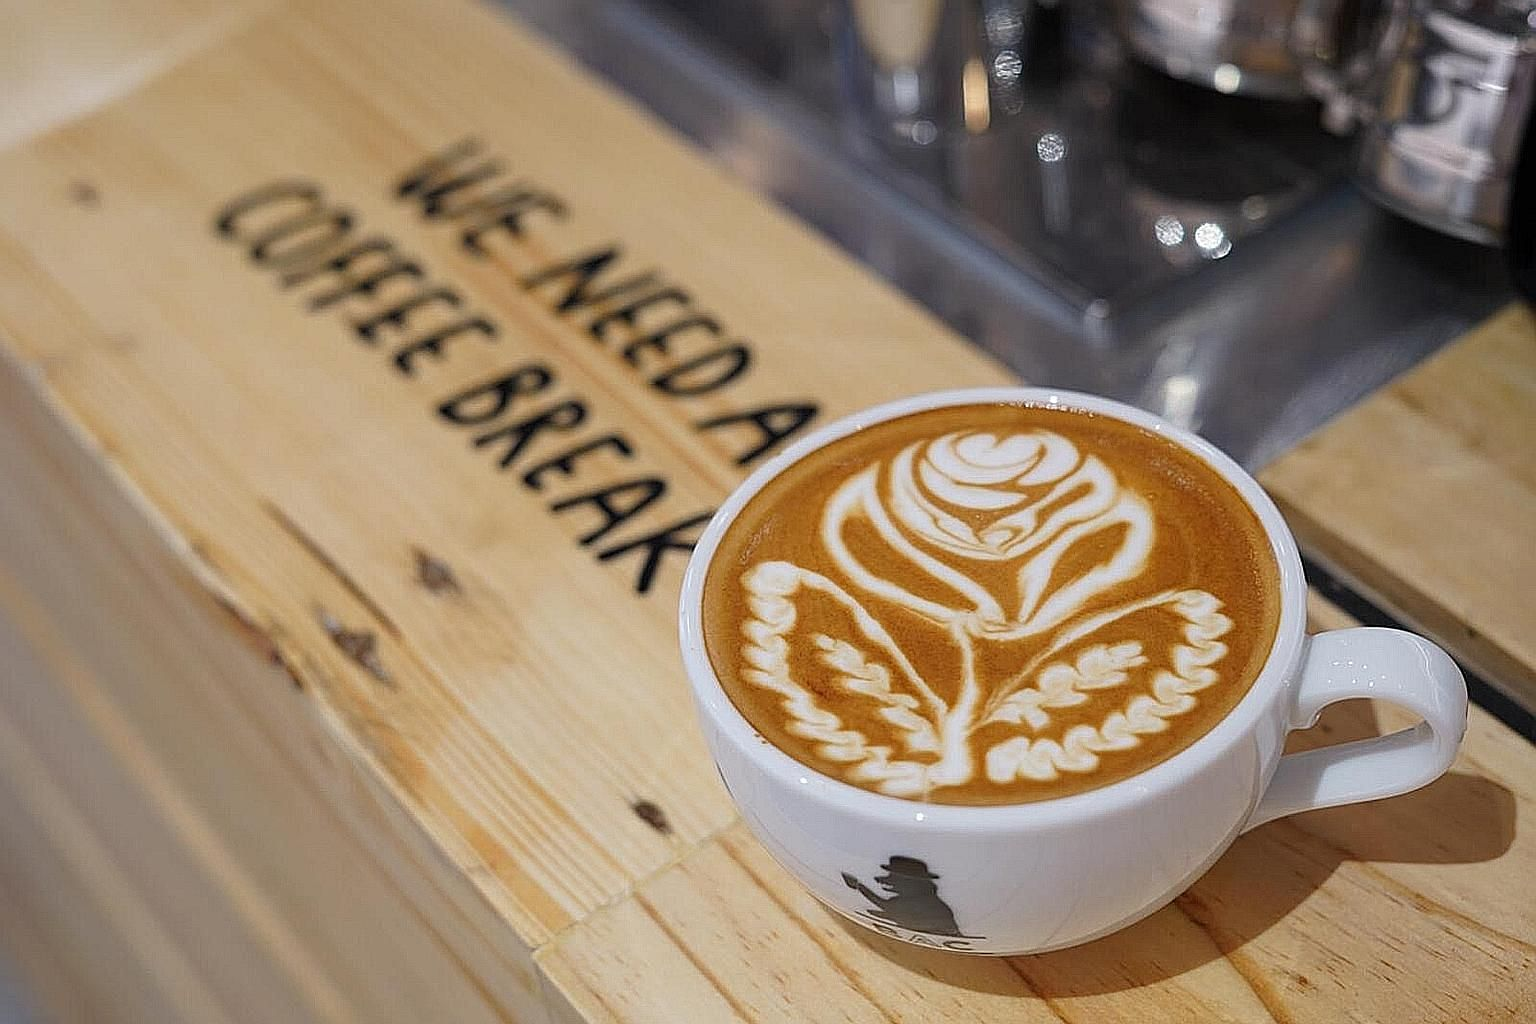 Gourmet Tribe encompasses gourmet events and workshops such as a latte art lesson at Baristart Coffee cafe in Tras Street.